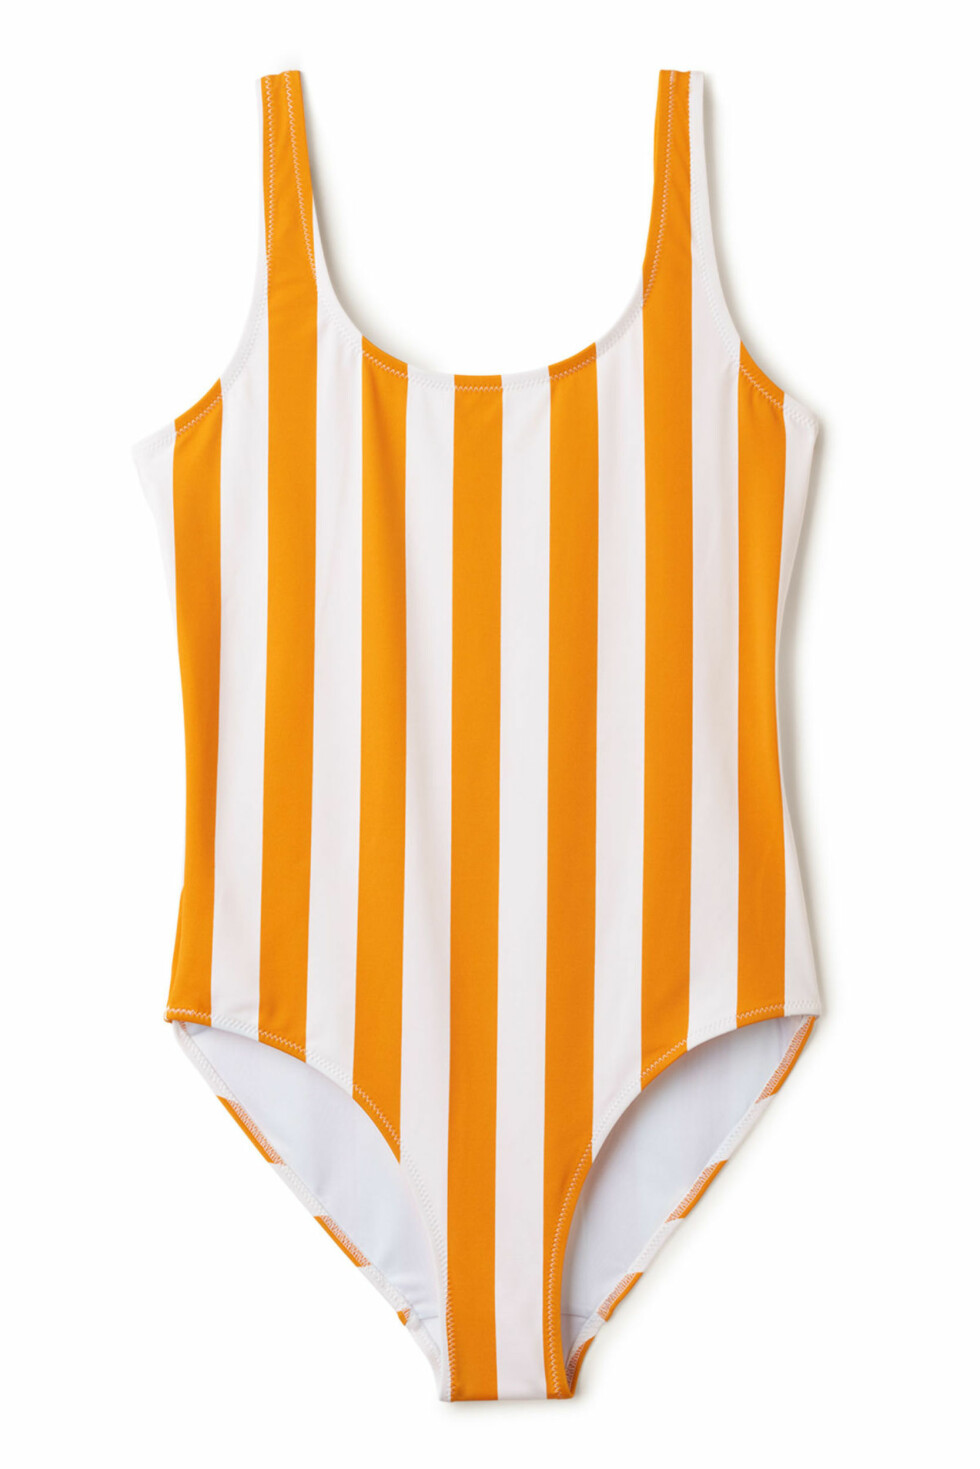 Badedrakt fra Weekday |300,-| https://www.weekday.com/en_sek/women/get-the-latest/new-arrivals/product.day-striped-swimsuit-yellow.0584052002.html